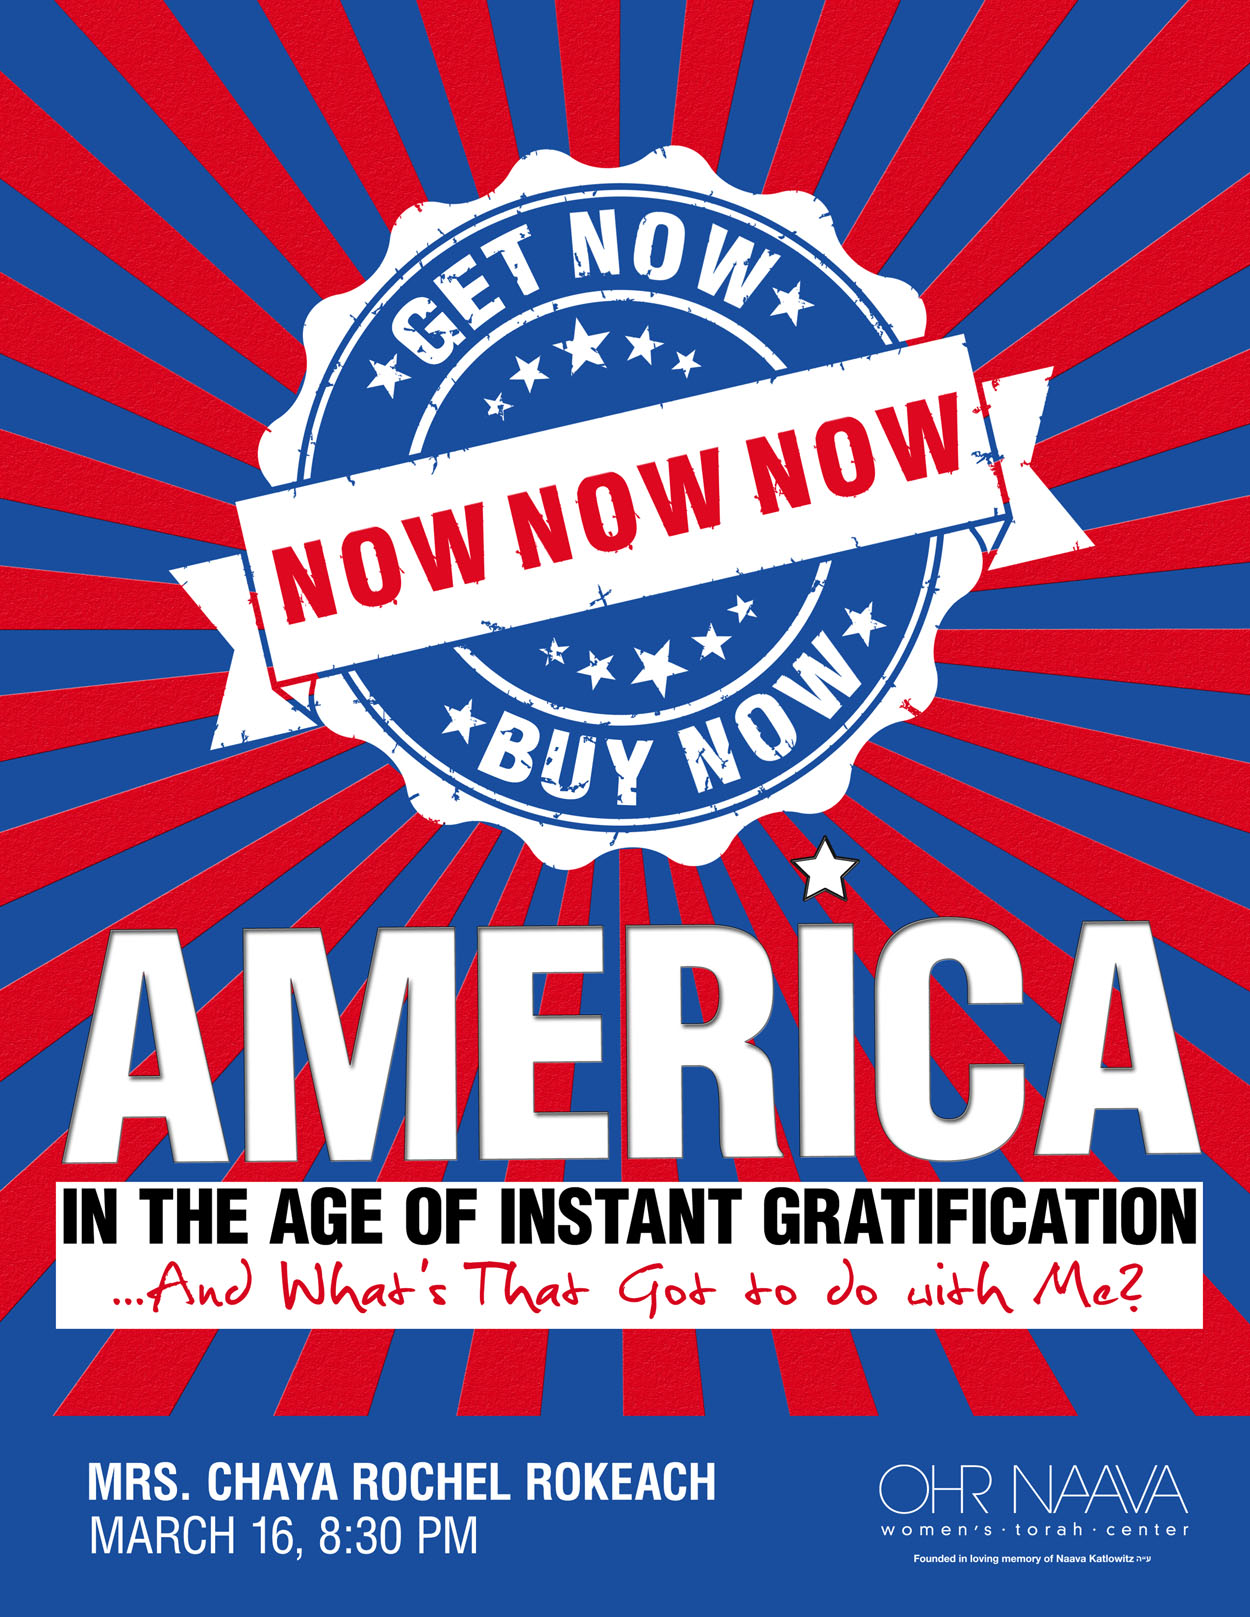 America: In the age of Instant Gratification